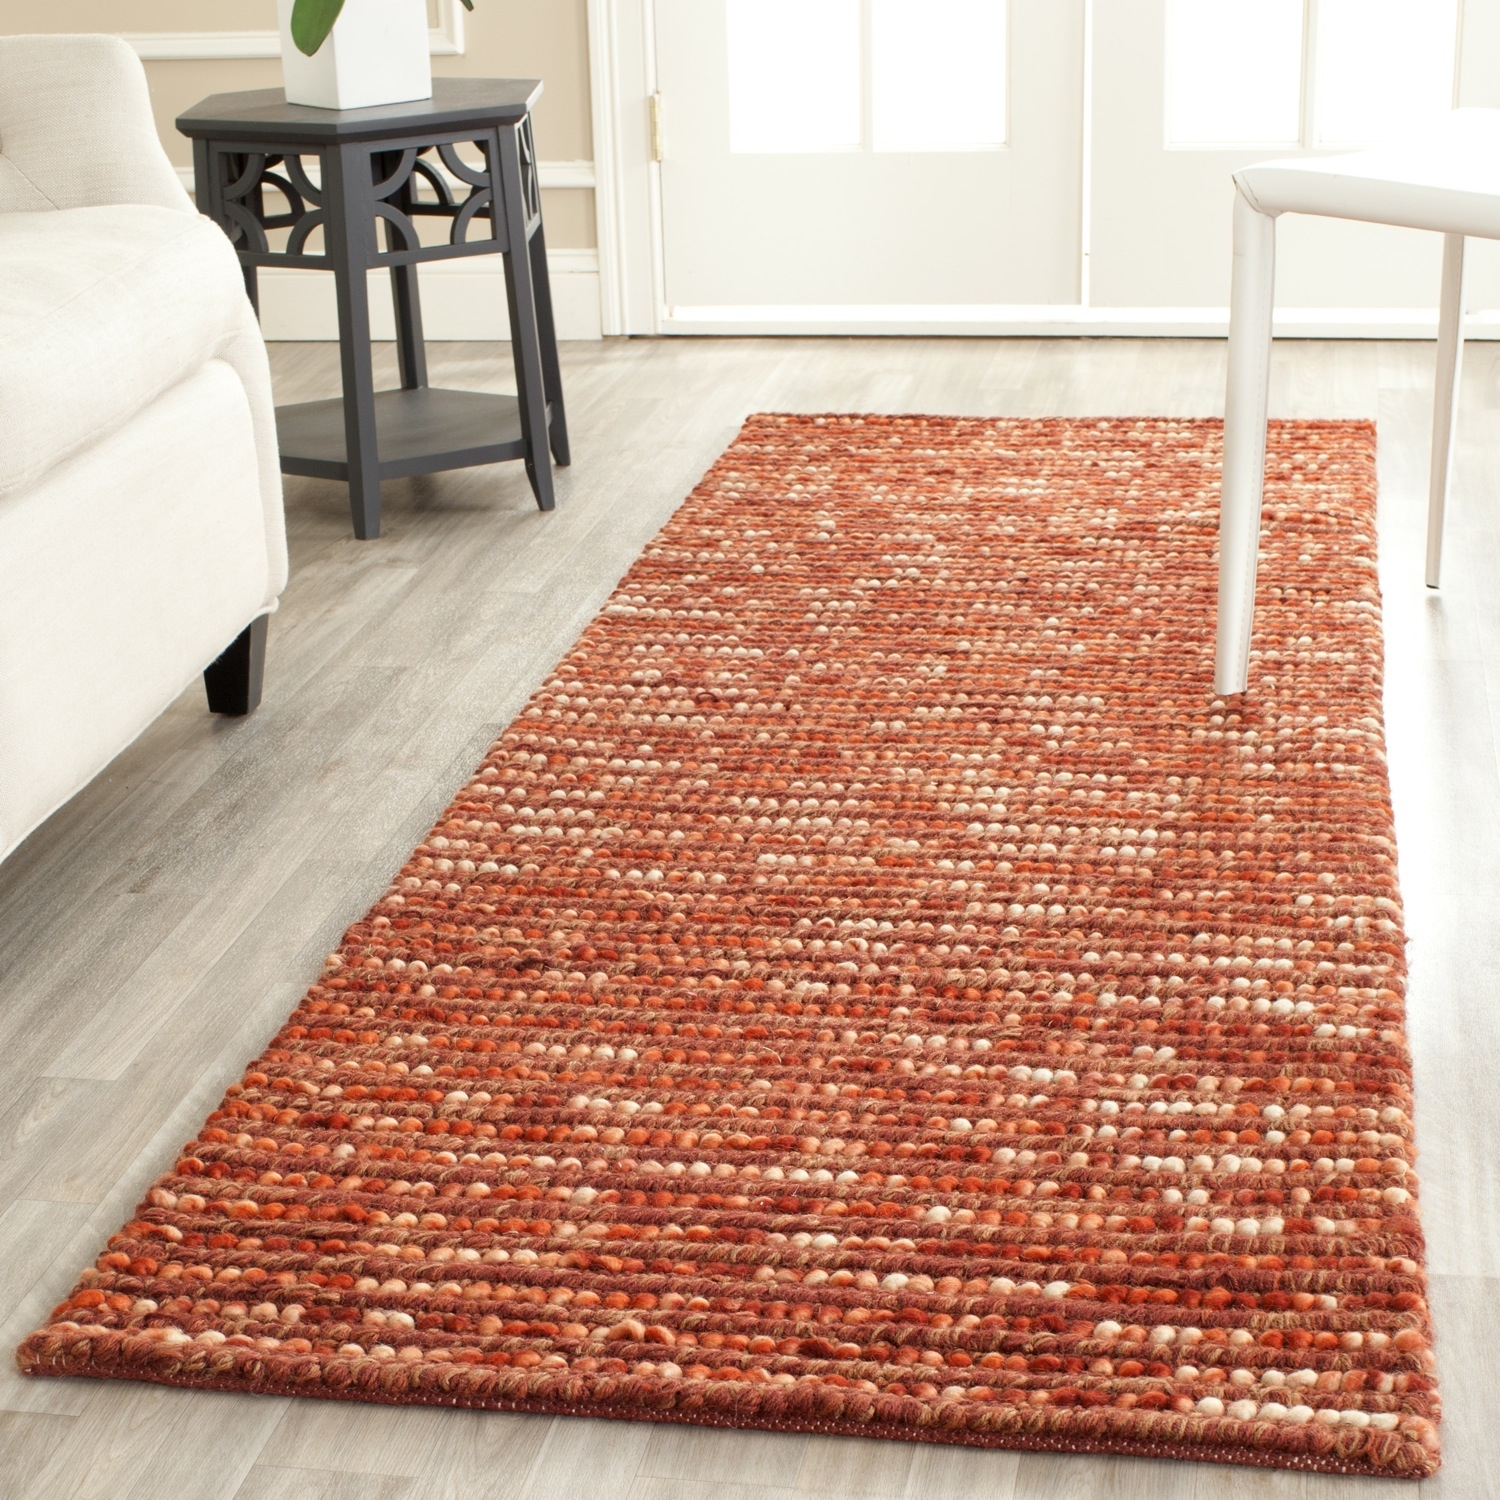 Wool Jute Area Rugs Roselawnlutheran With Regard To Wool Jute Area Rugs (#14 of 15)